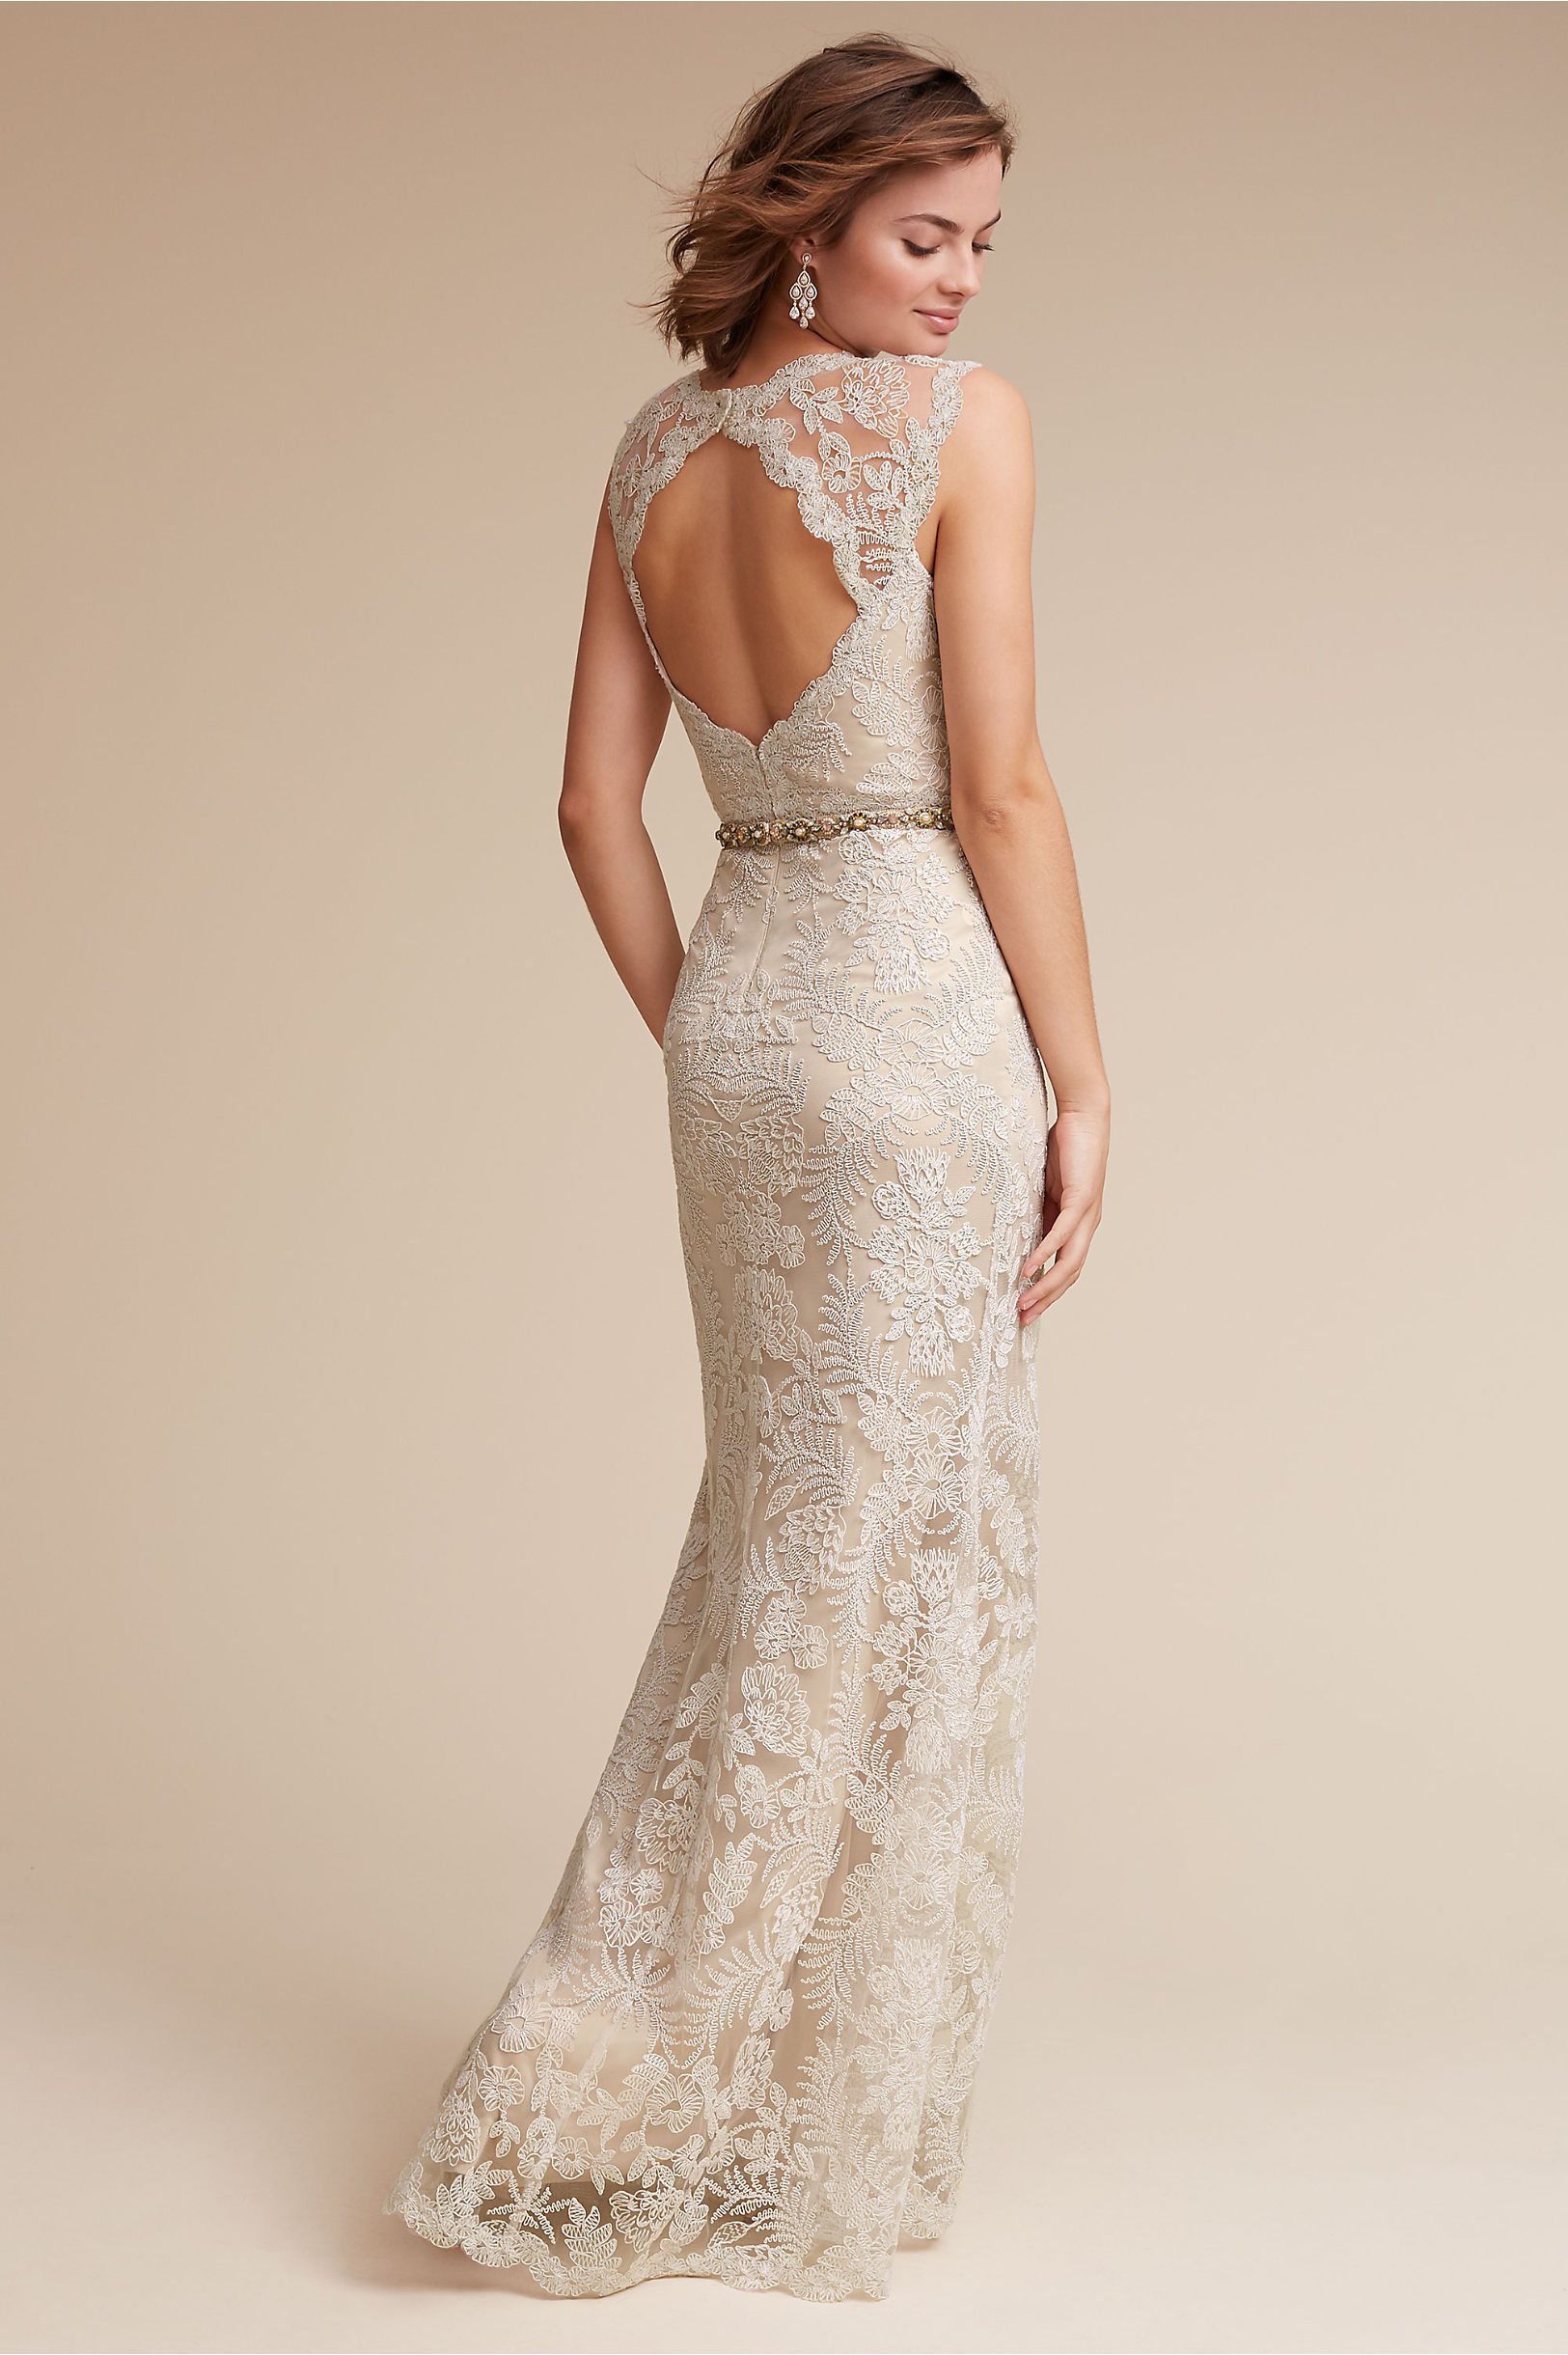 April gown in bride wedding dresses bhldn for Bridesmaid dresses for april wedding